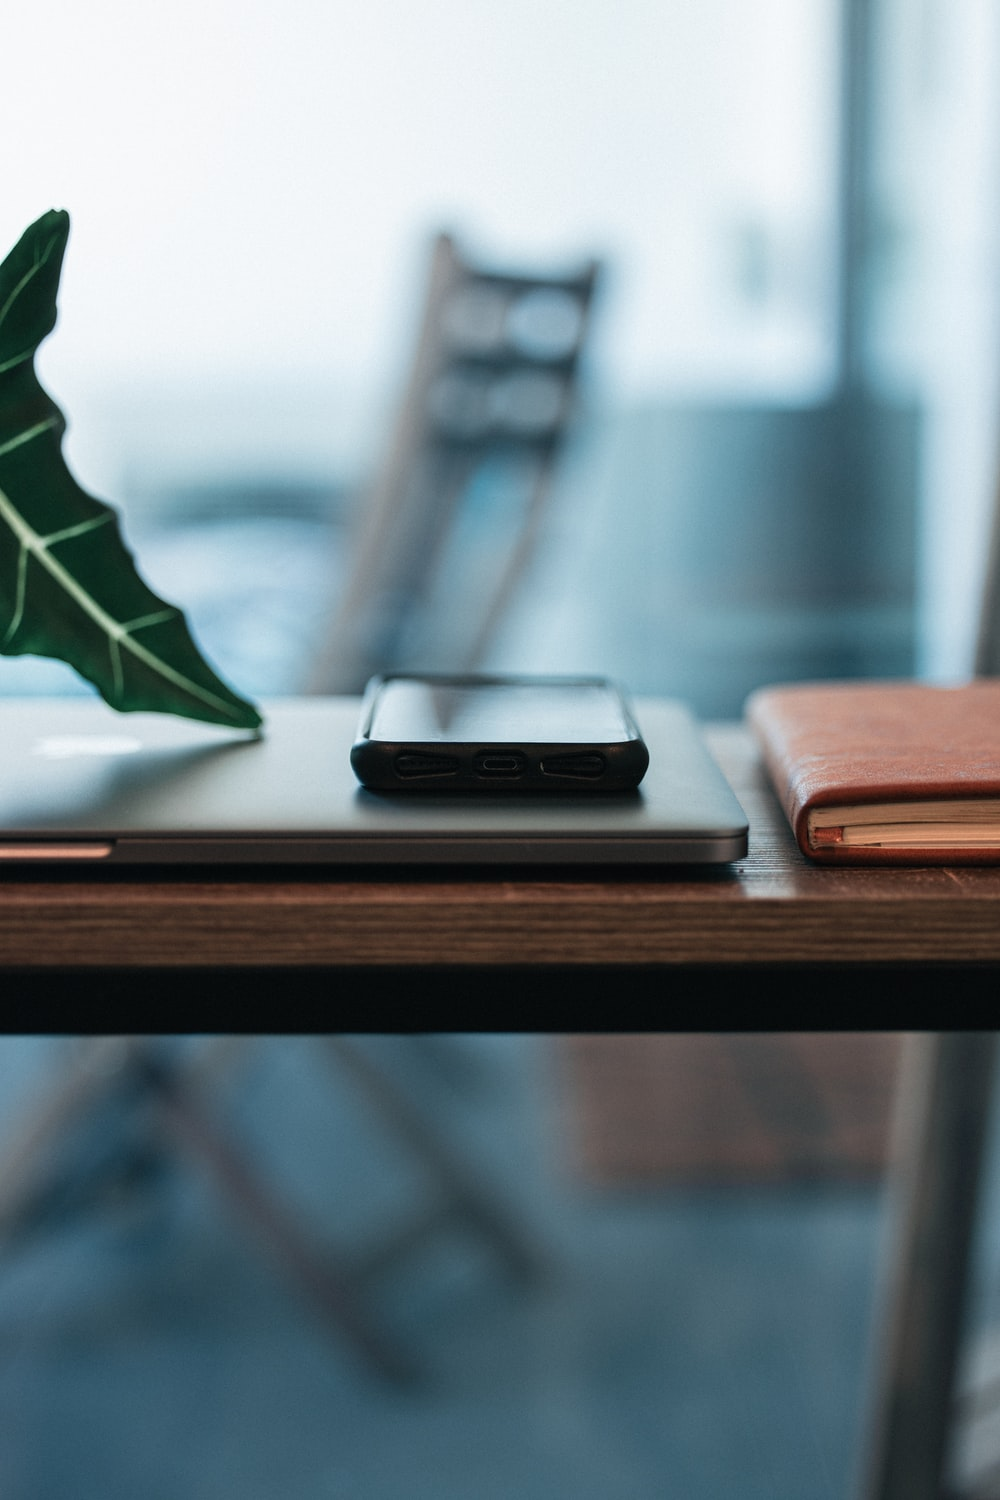 black and silver candybar phone on brown wooden table